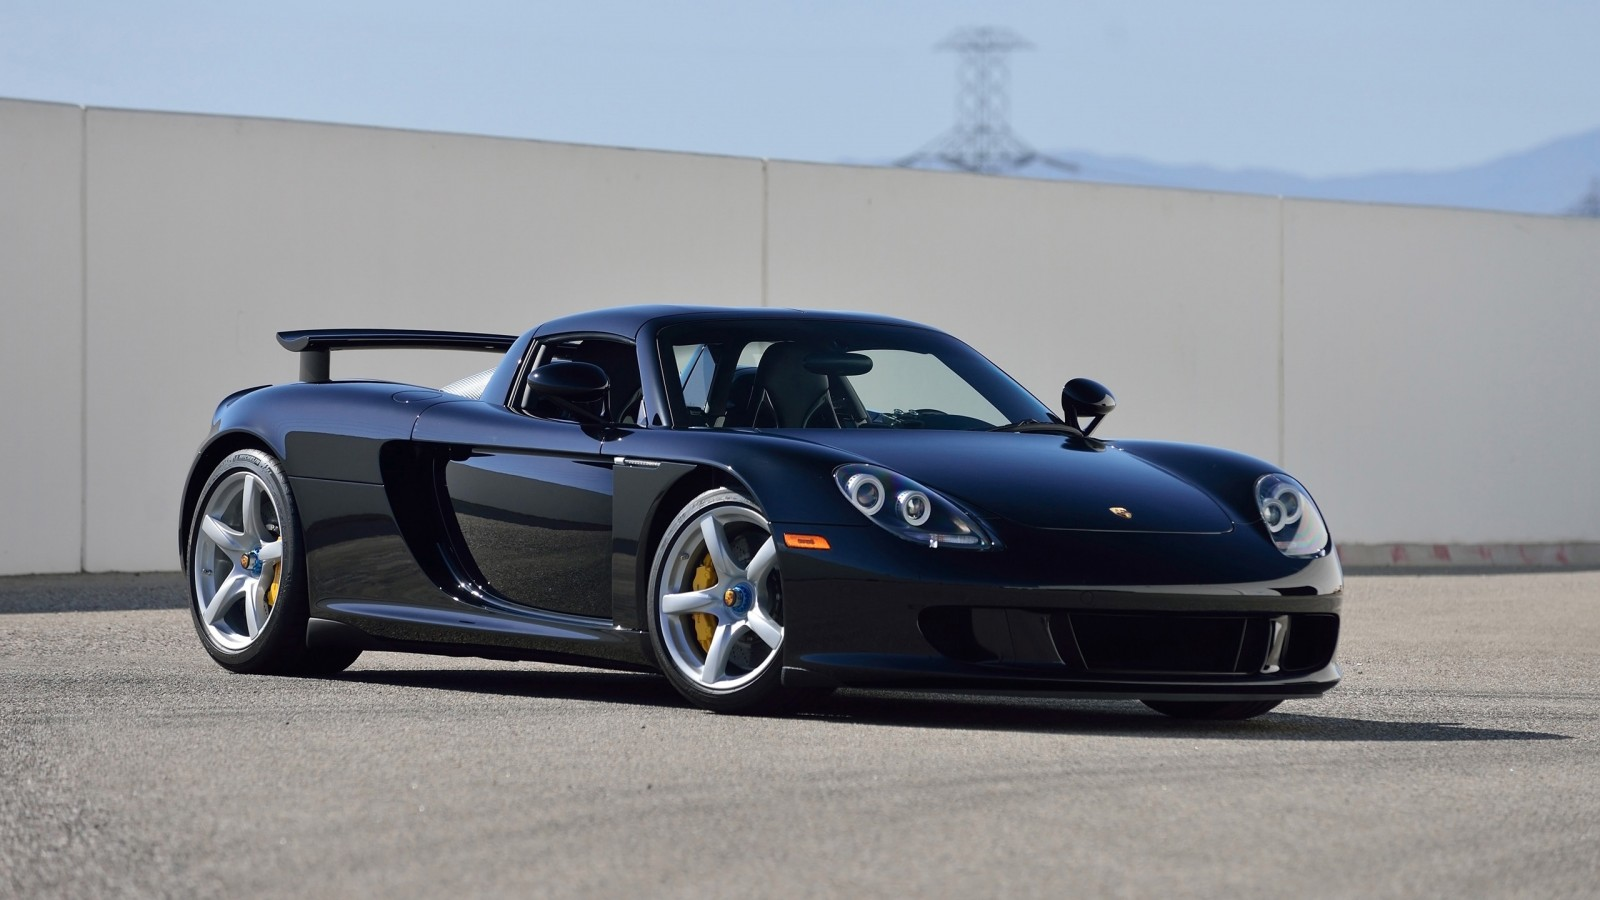 2005 porsche carrera gt basalt wallpaper hd car. Black Bedroom Furniture Sets. Home Design Ideas